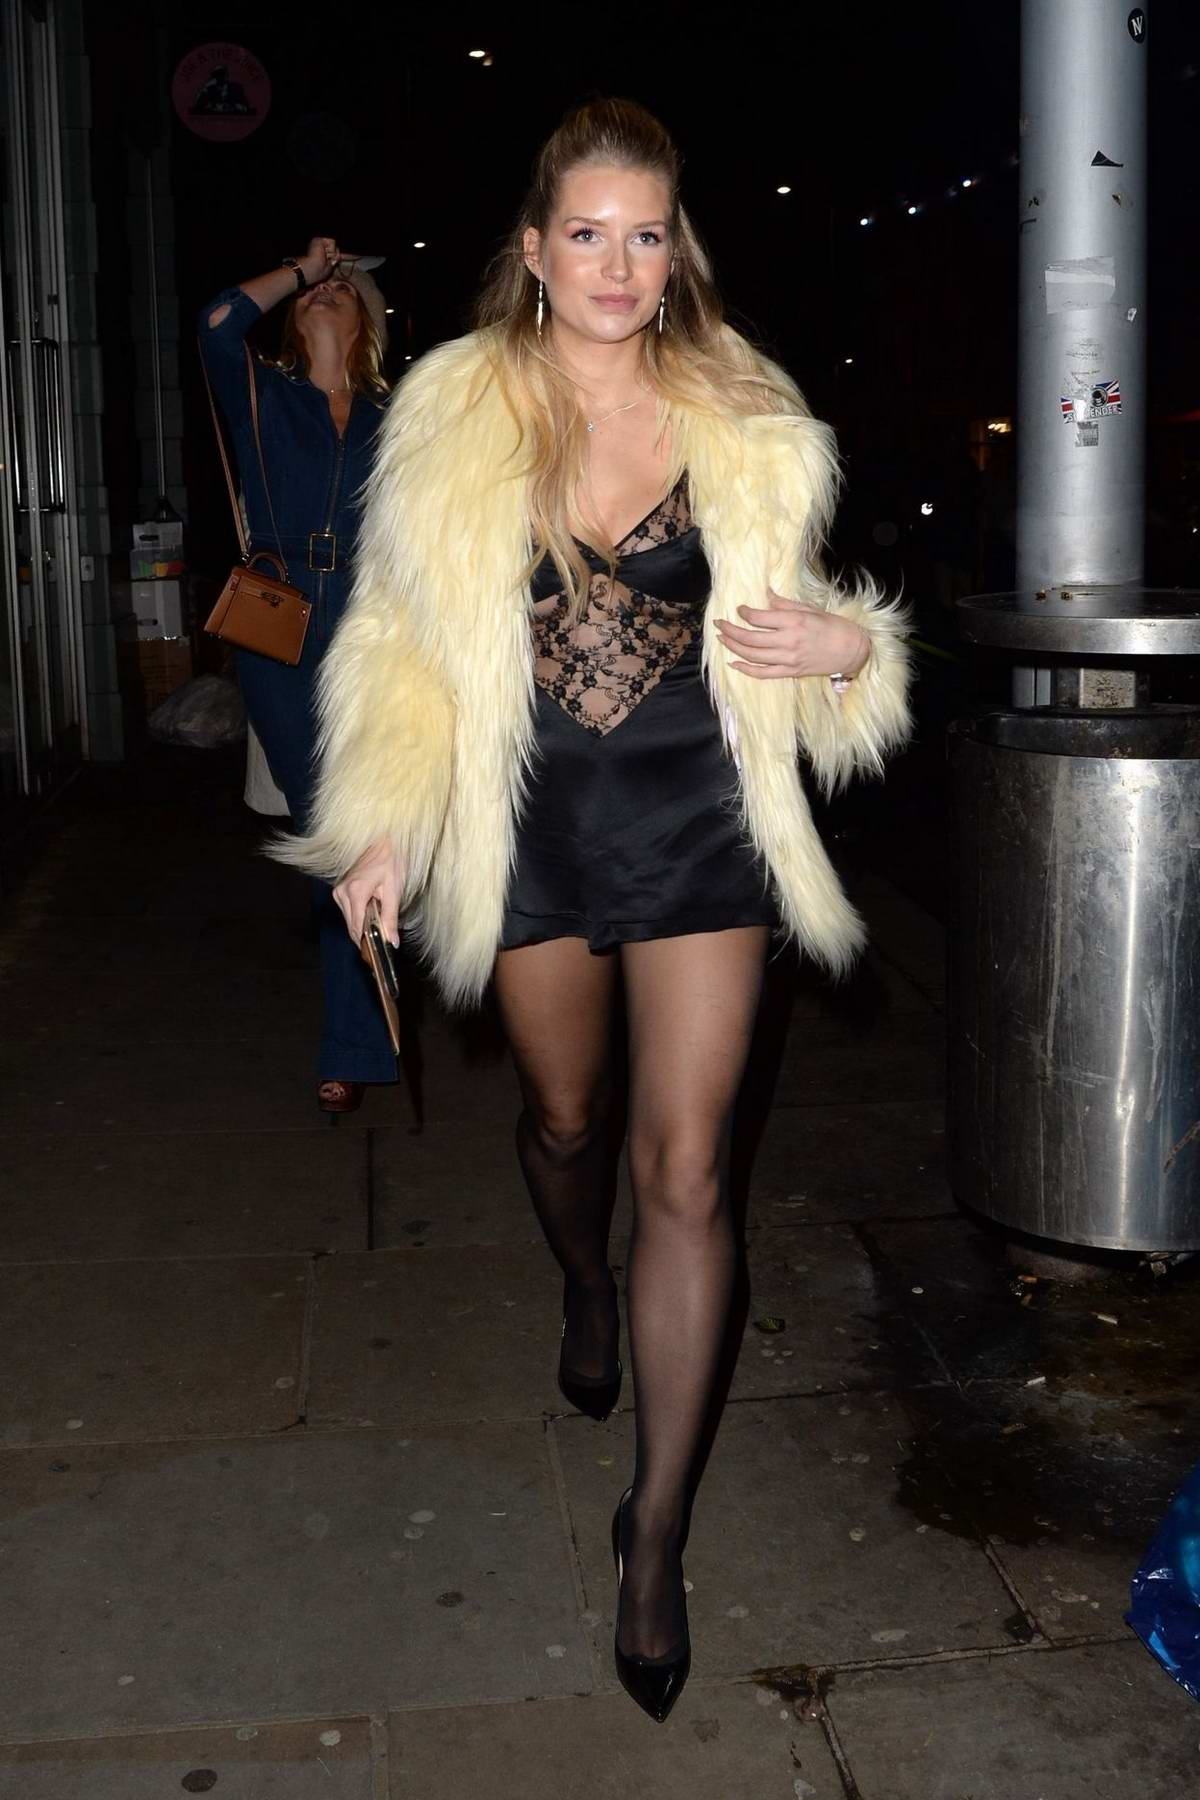 Lottie Moss celebrates her 22nd Birthday with friends at Bluebird restaurant in London, UK